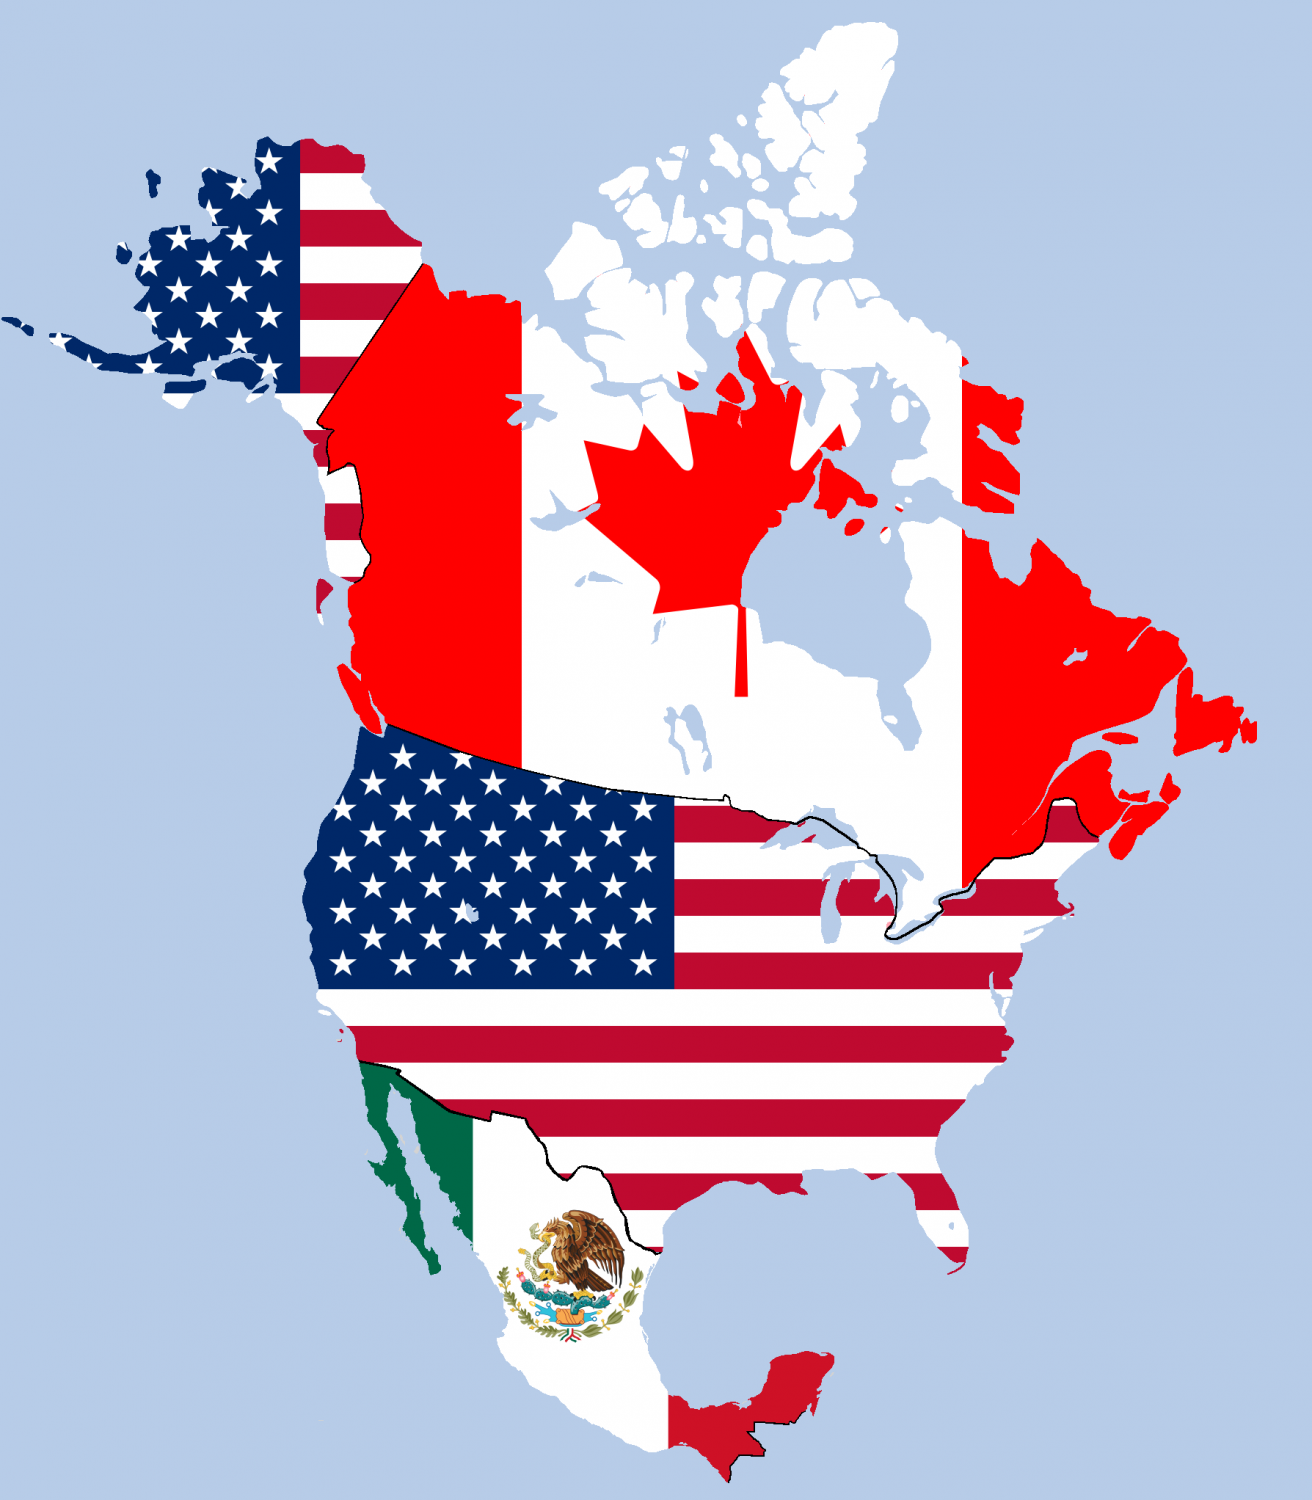 U.S., Mexico Officials May Sign Trade Deal Without Canada   Fronteras